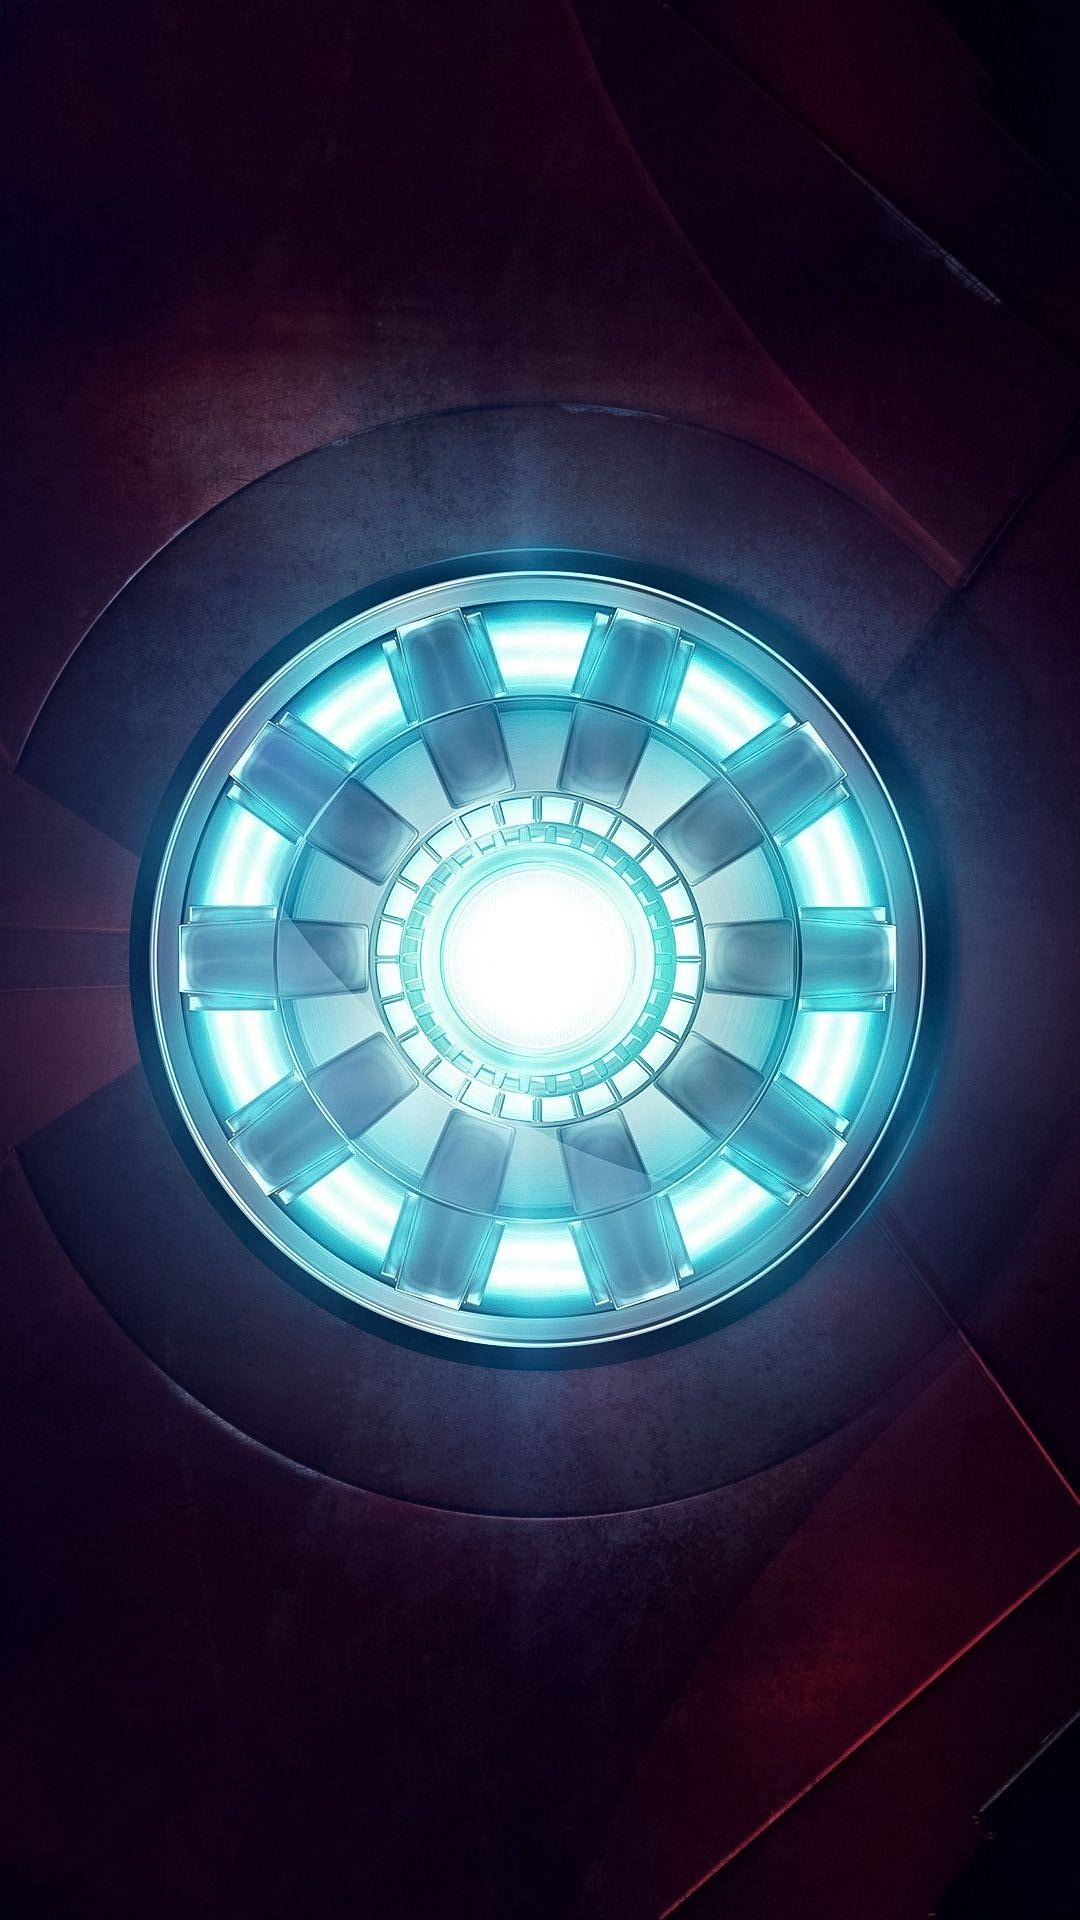 Iron man arc reactor wallpaper visit now to grab - Iron man heart wallpaper ...